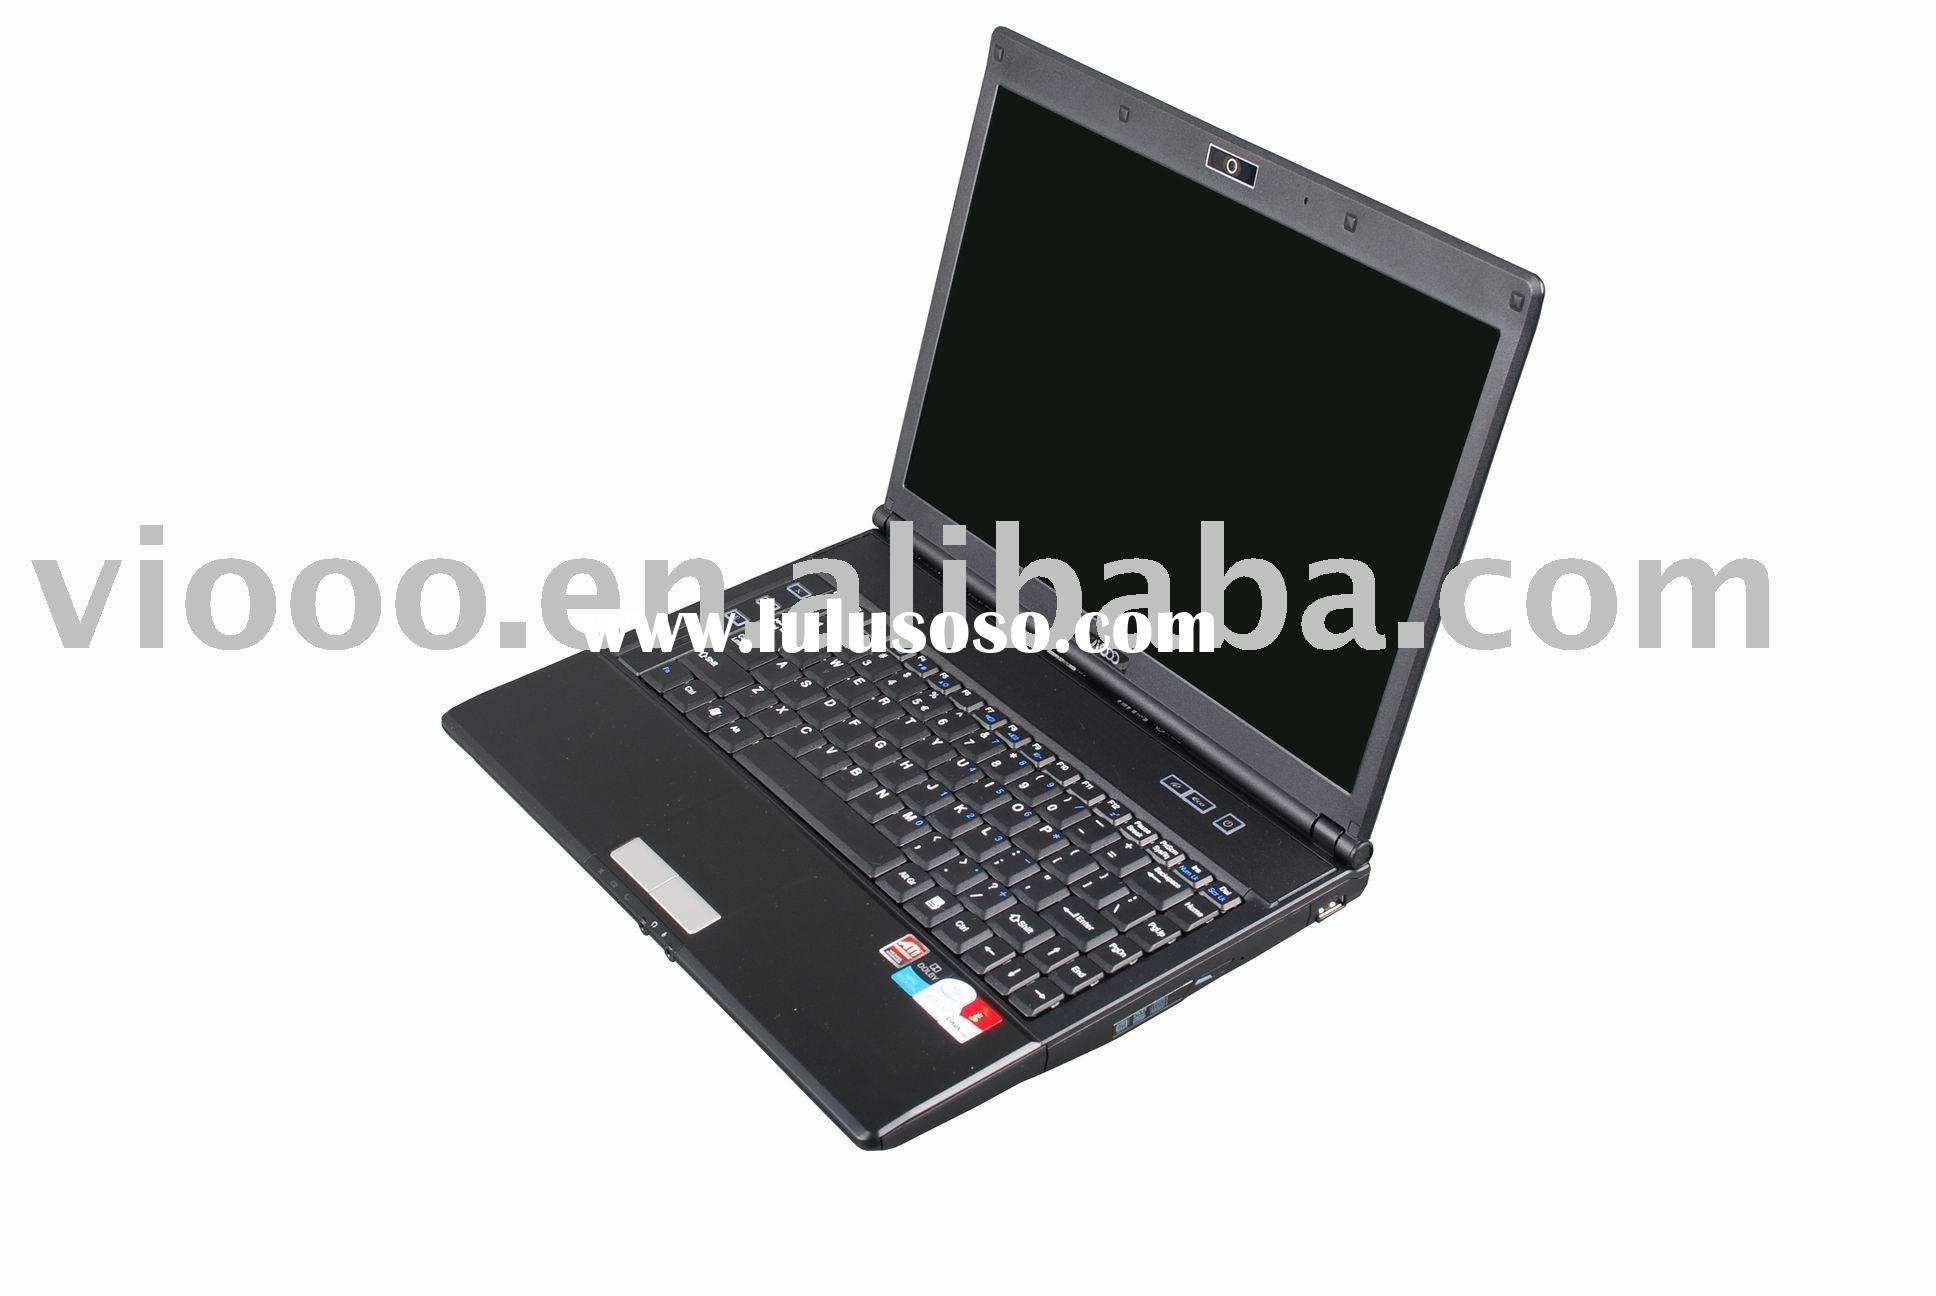 14.1 inch laptop with dedicated graphics card and camera